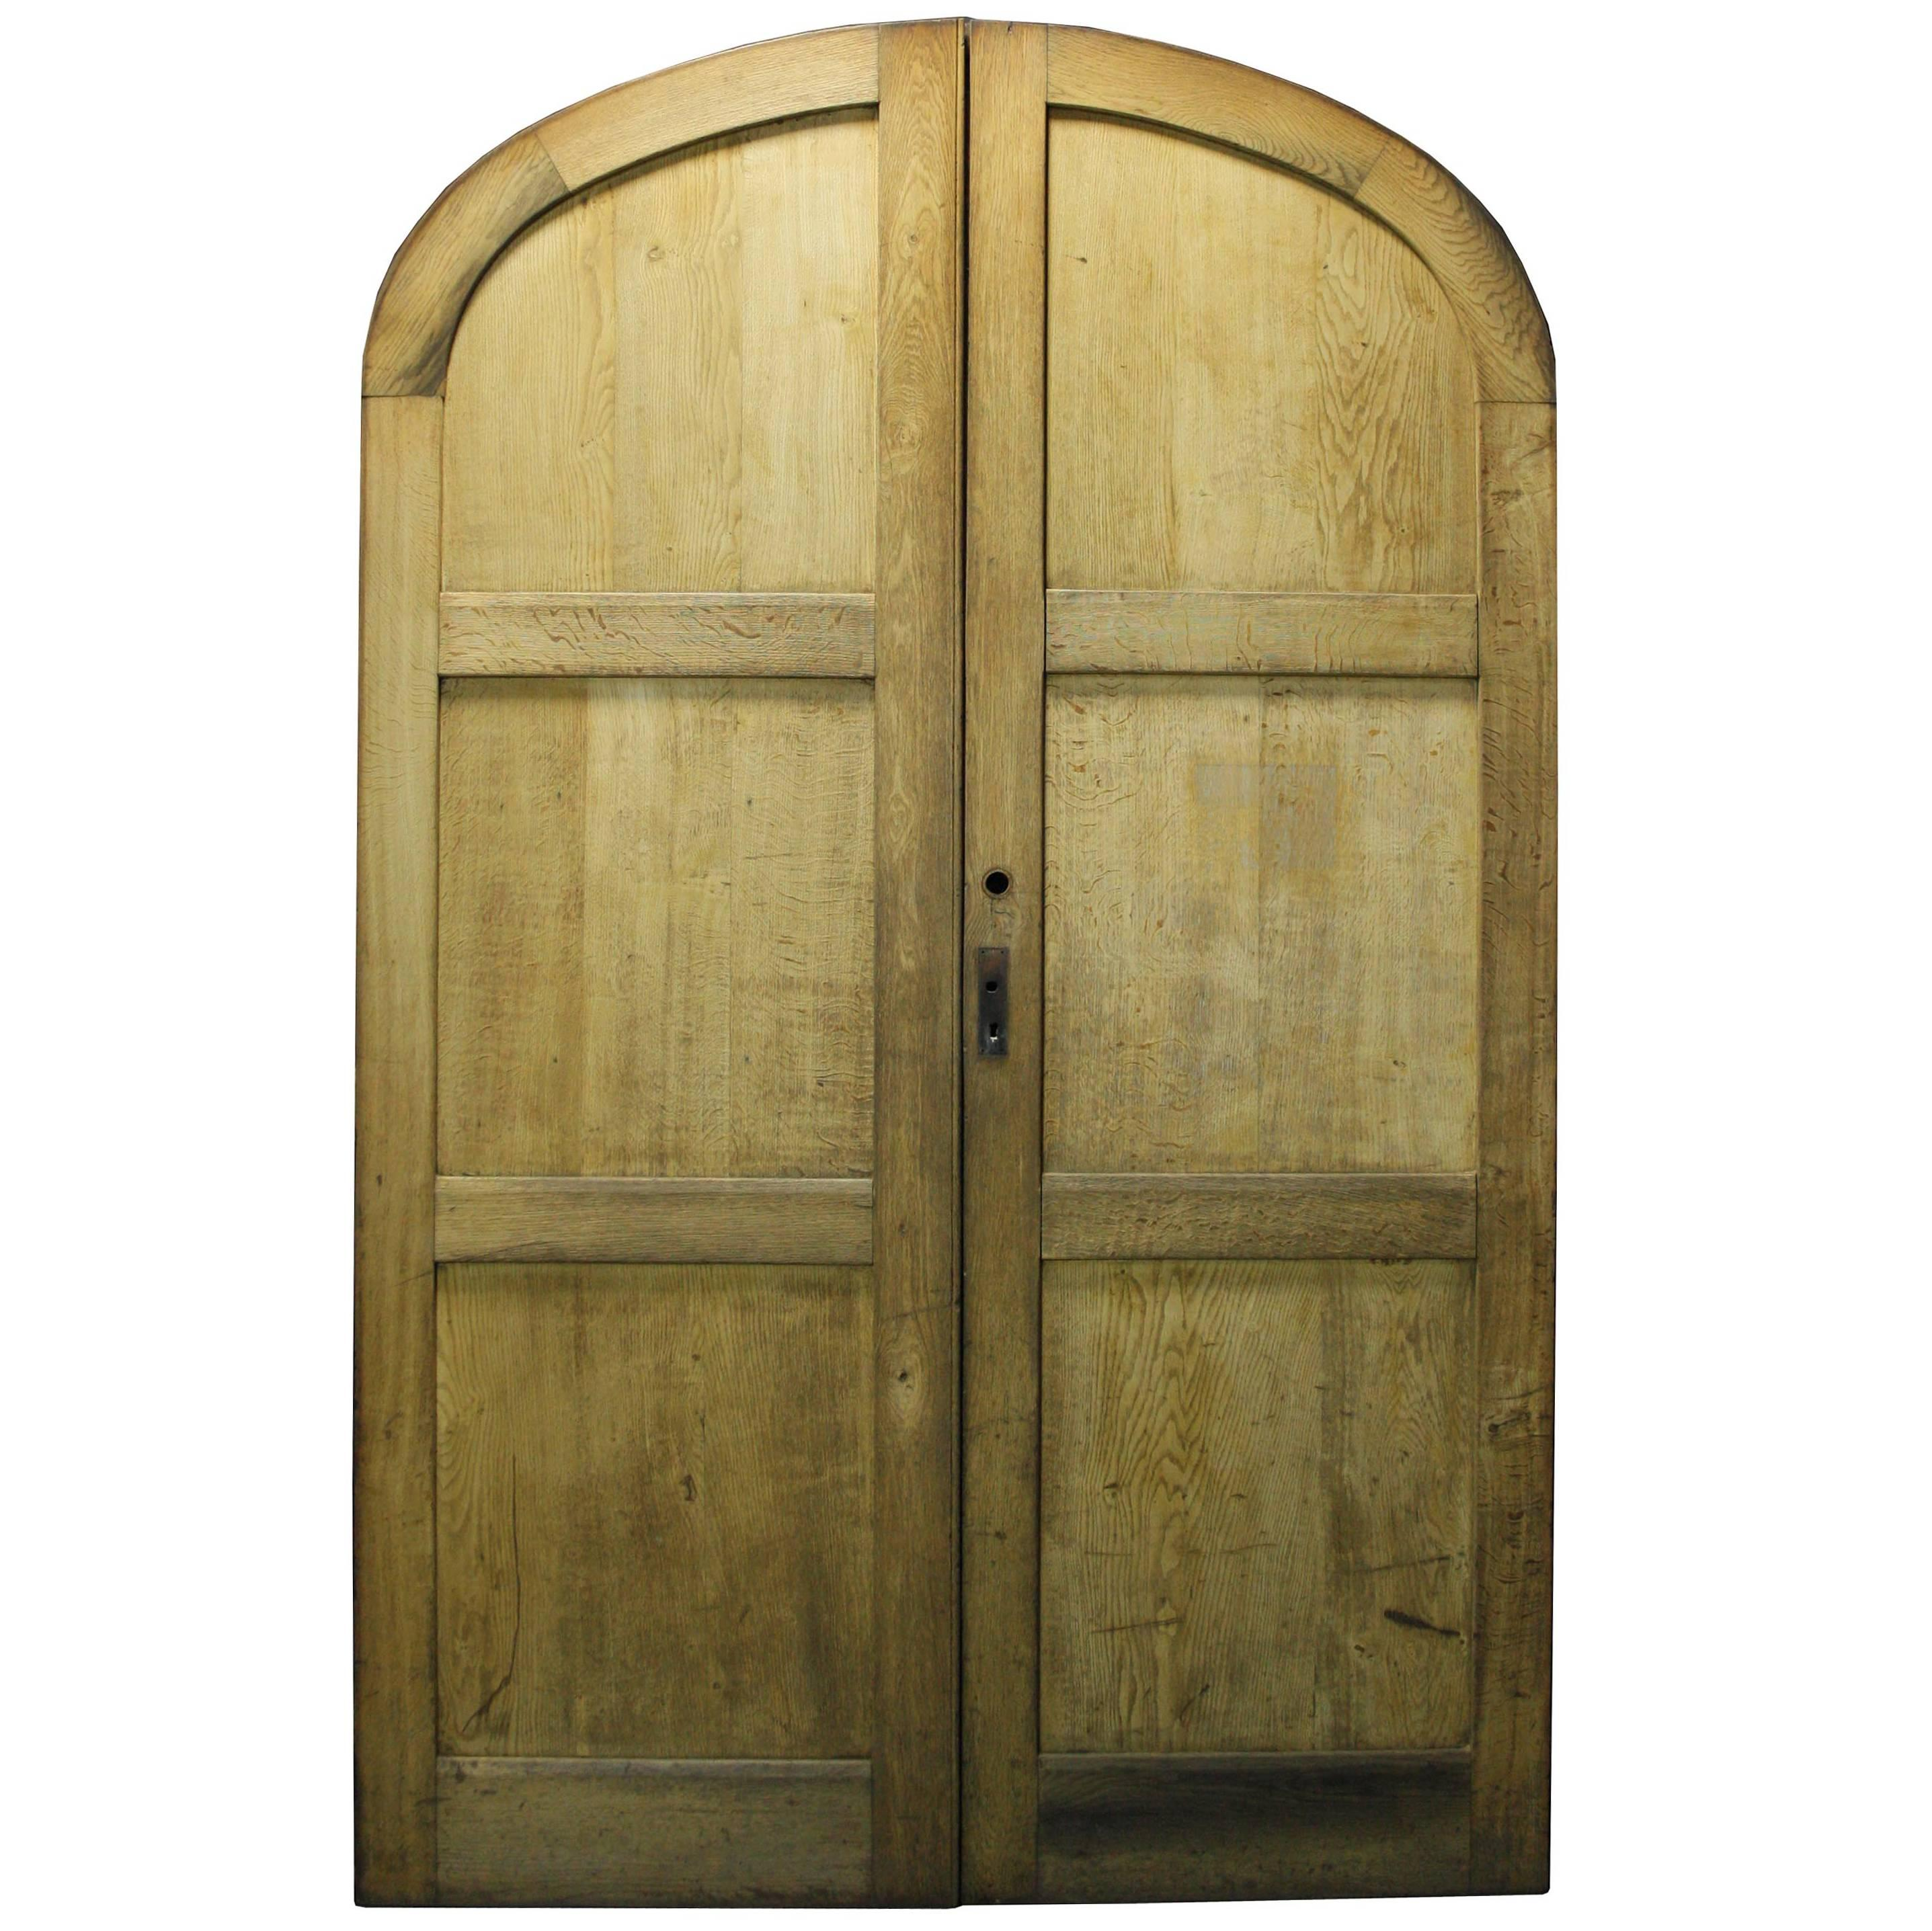 Pair of 1920s Exterior Arched Oak Double Doors  sc 1 st  1stDibs & 1920s Pair of Fireproof Kalamein Doors with Five Panels by Coburn ... pezcame.com